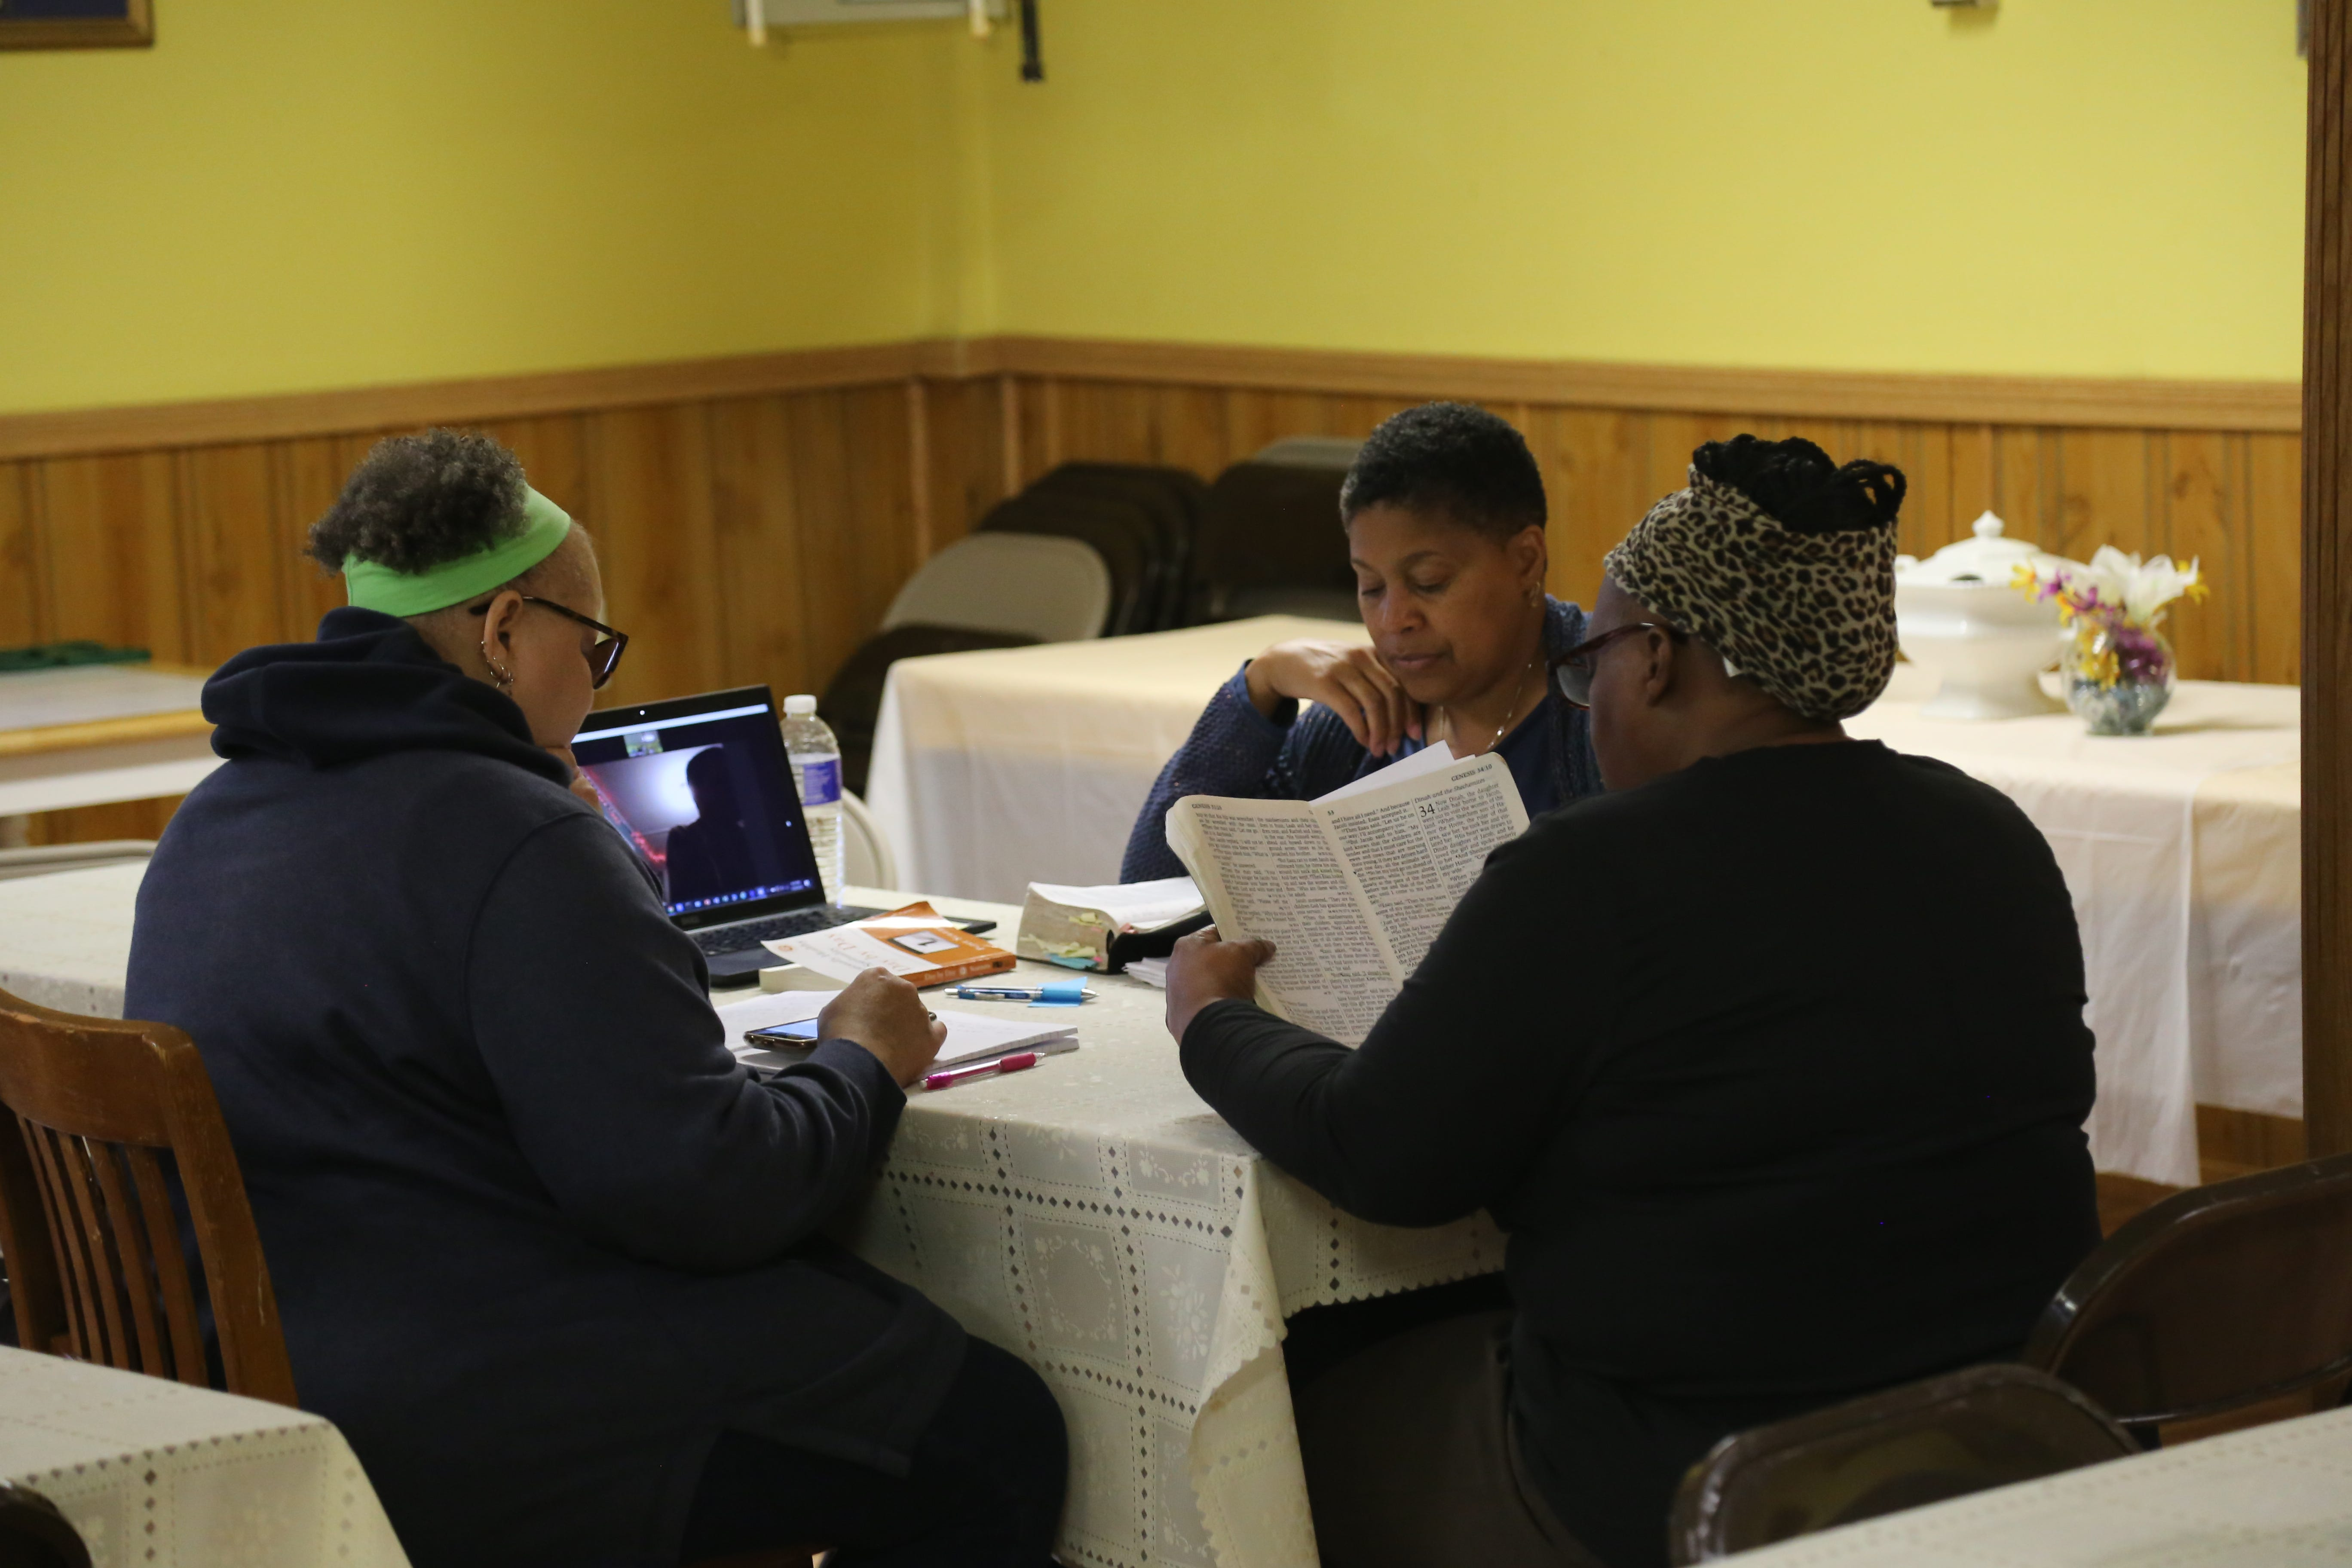 Rev. Paris Price (back) leads parishioners in a bible study class inside  a room in St. James AME Zion Church on the evening of Wednesday, Oct. 9.